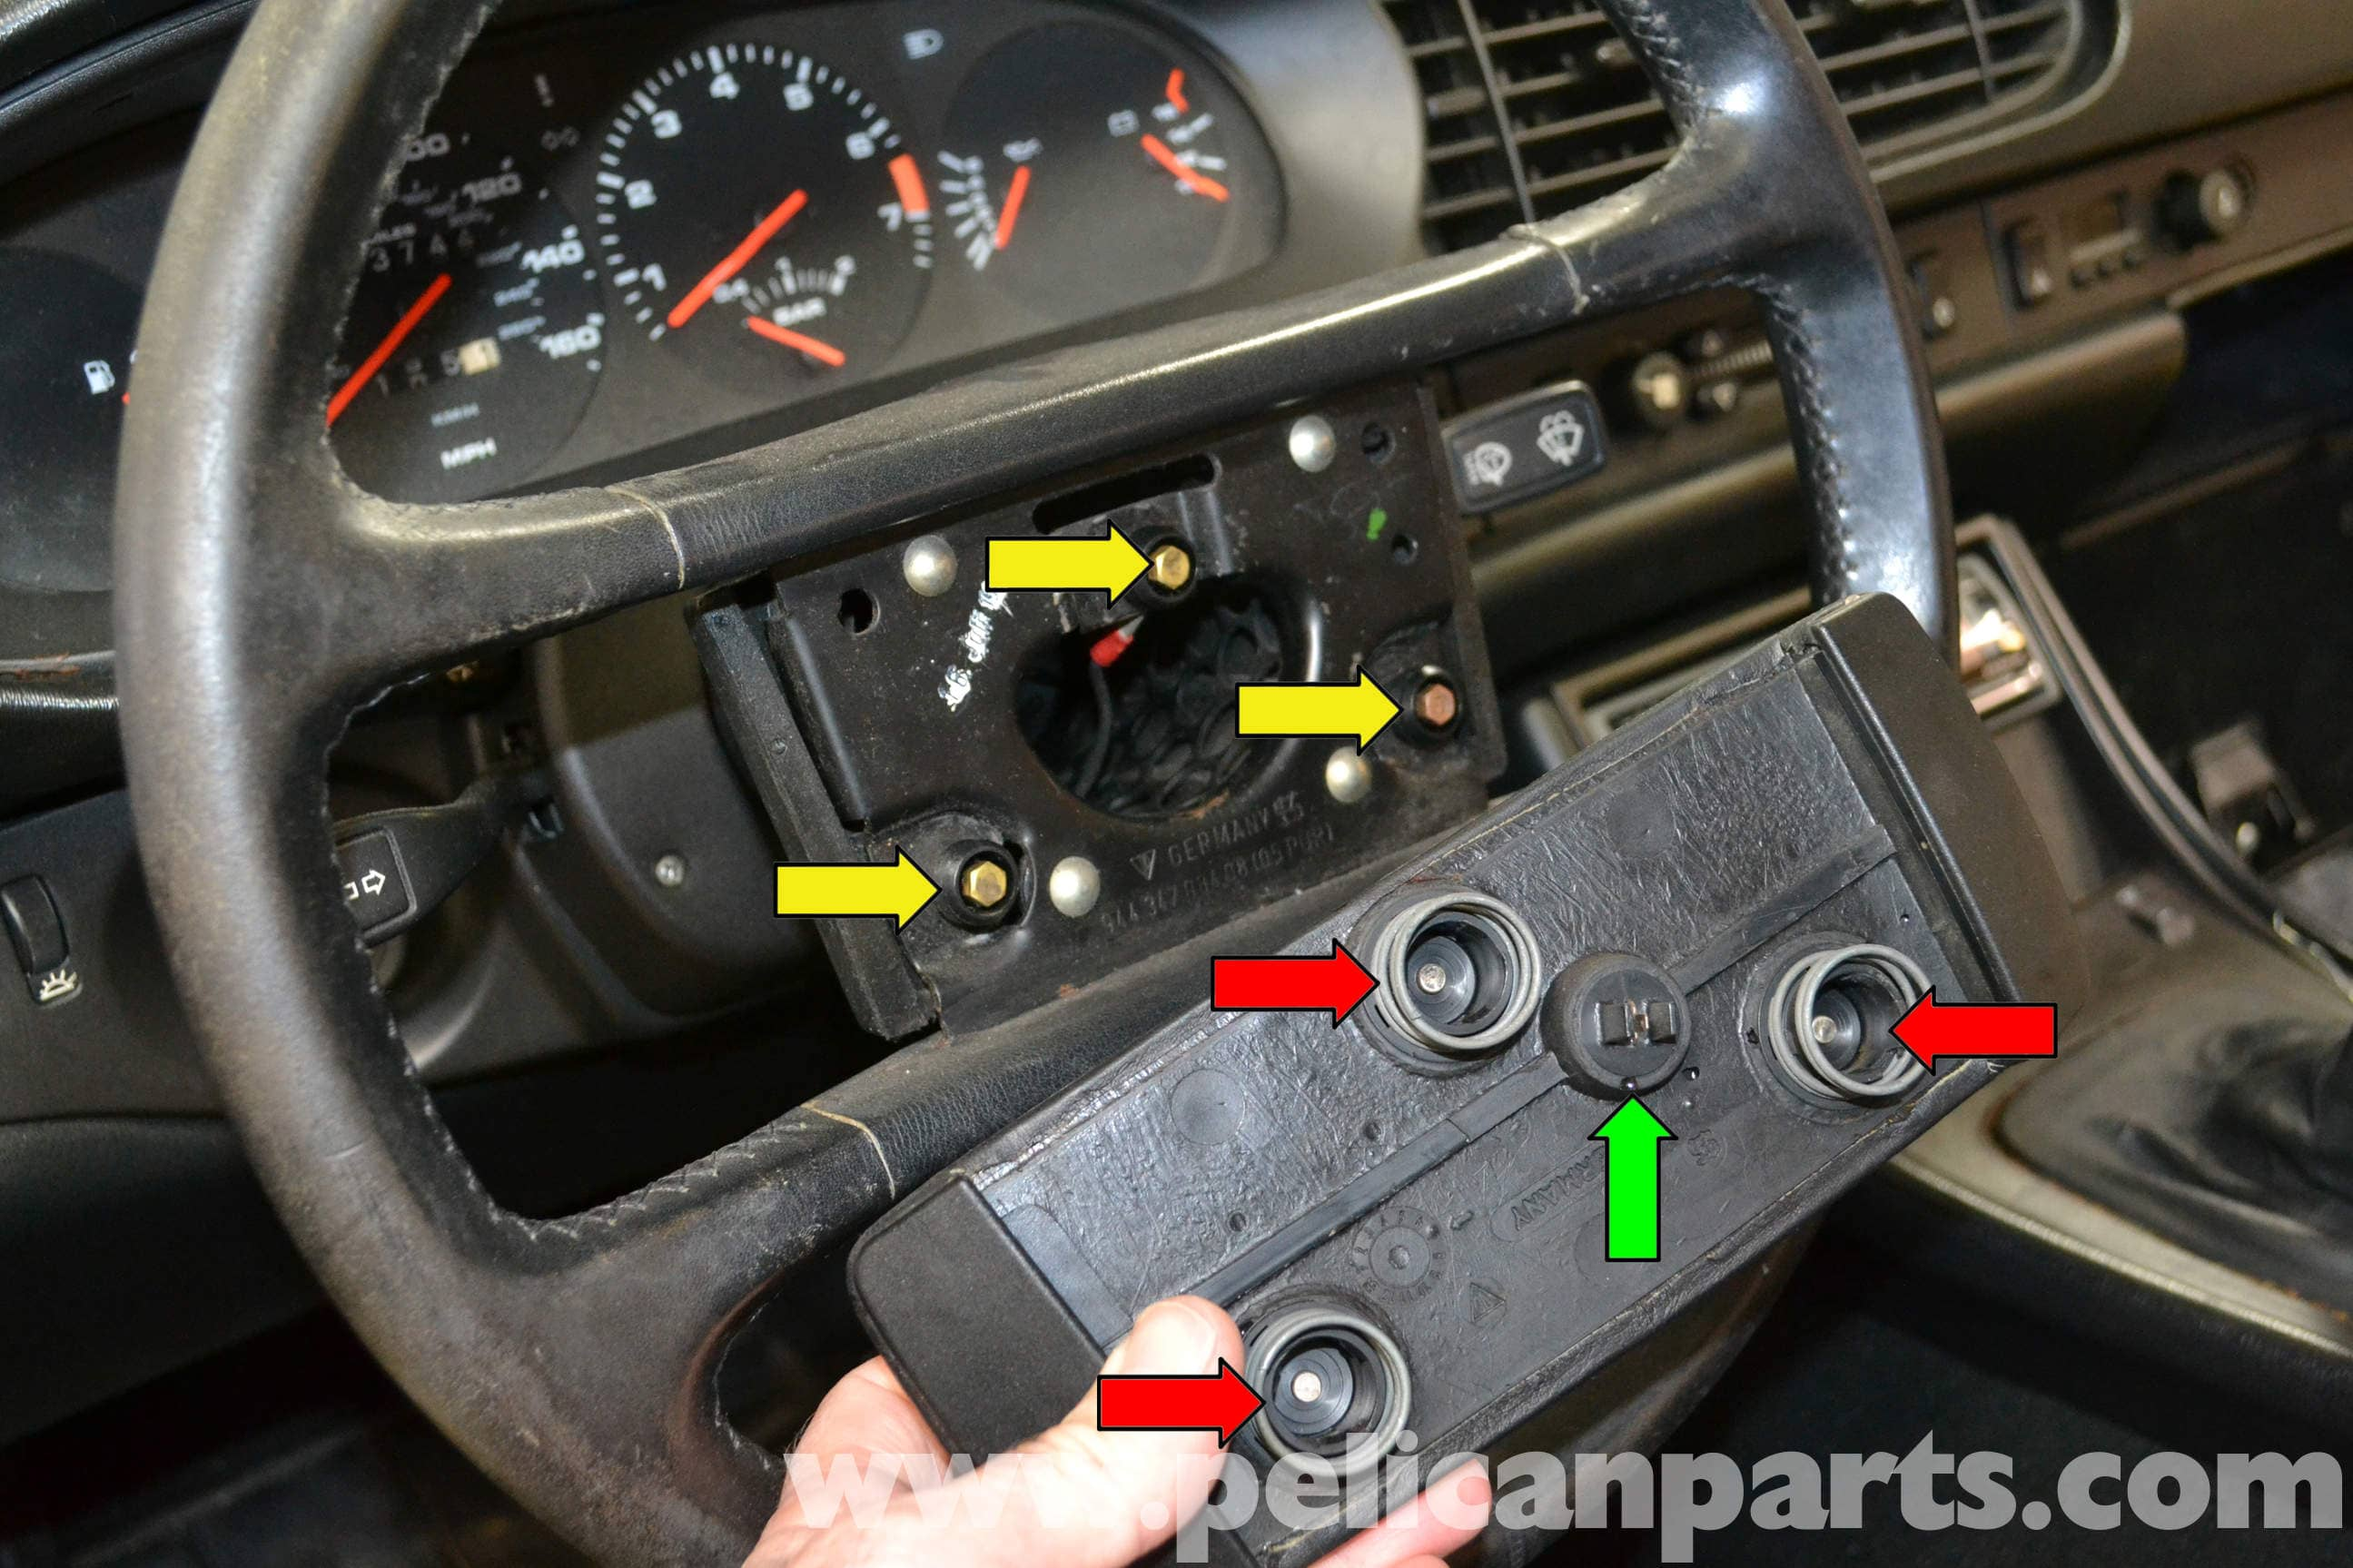 2001 Eclipse Fuel Filter Replacement Wiring Diagram Photos For Help